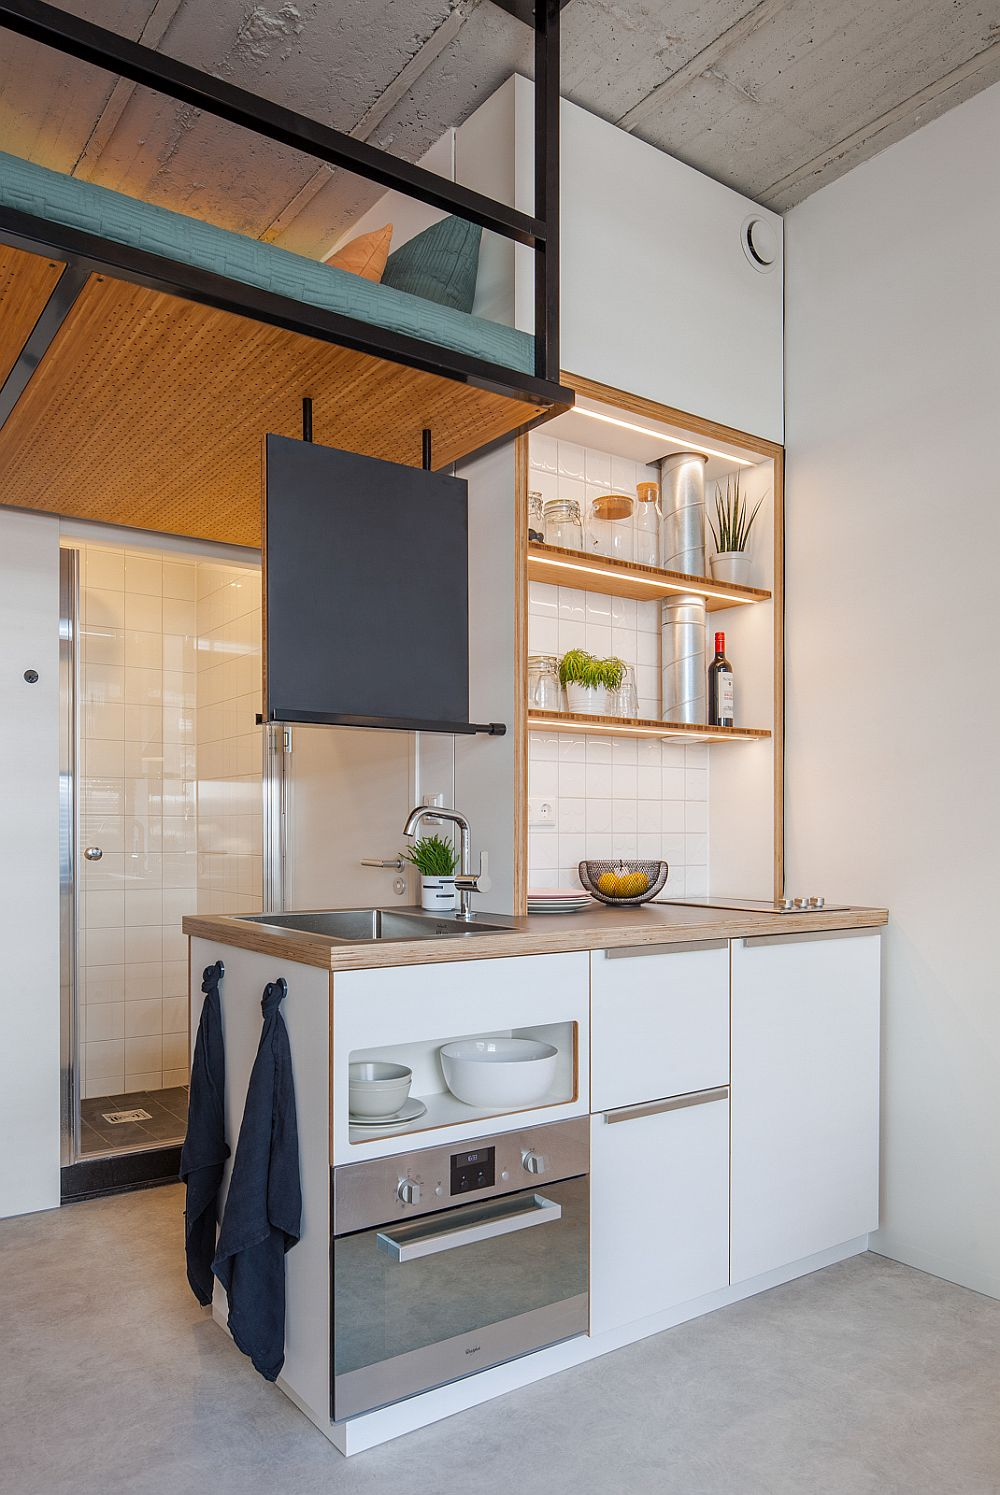 Ultra-tiny kitchen and bathroom next to one another